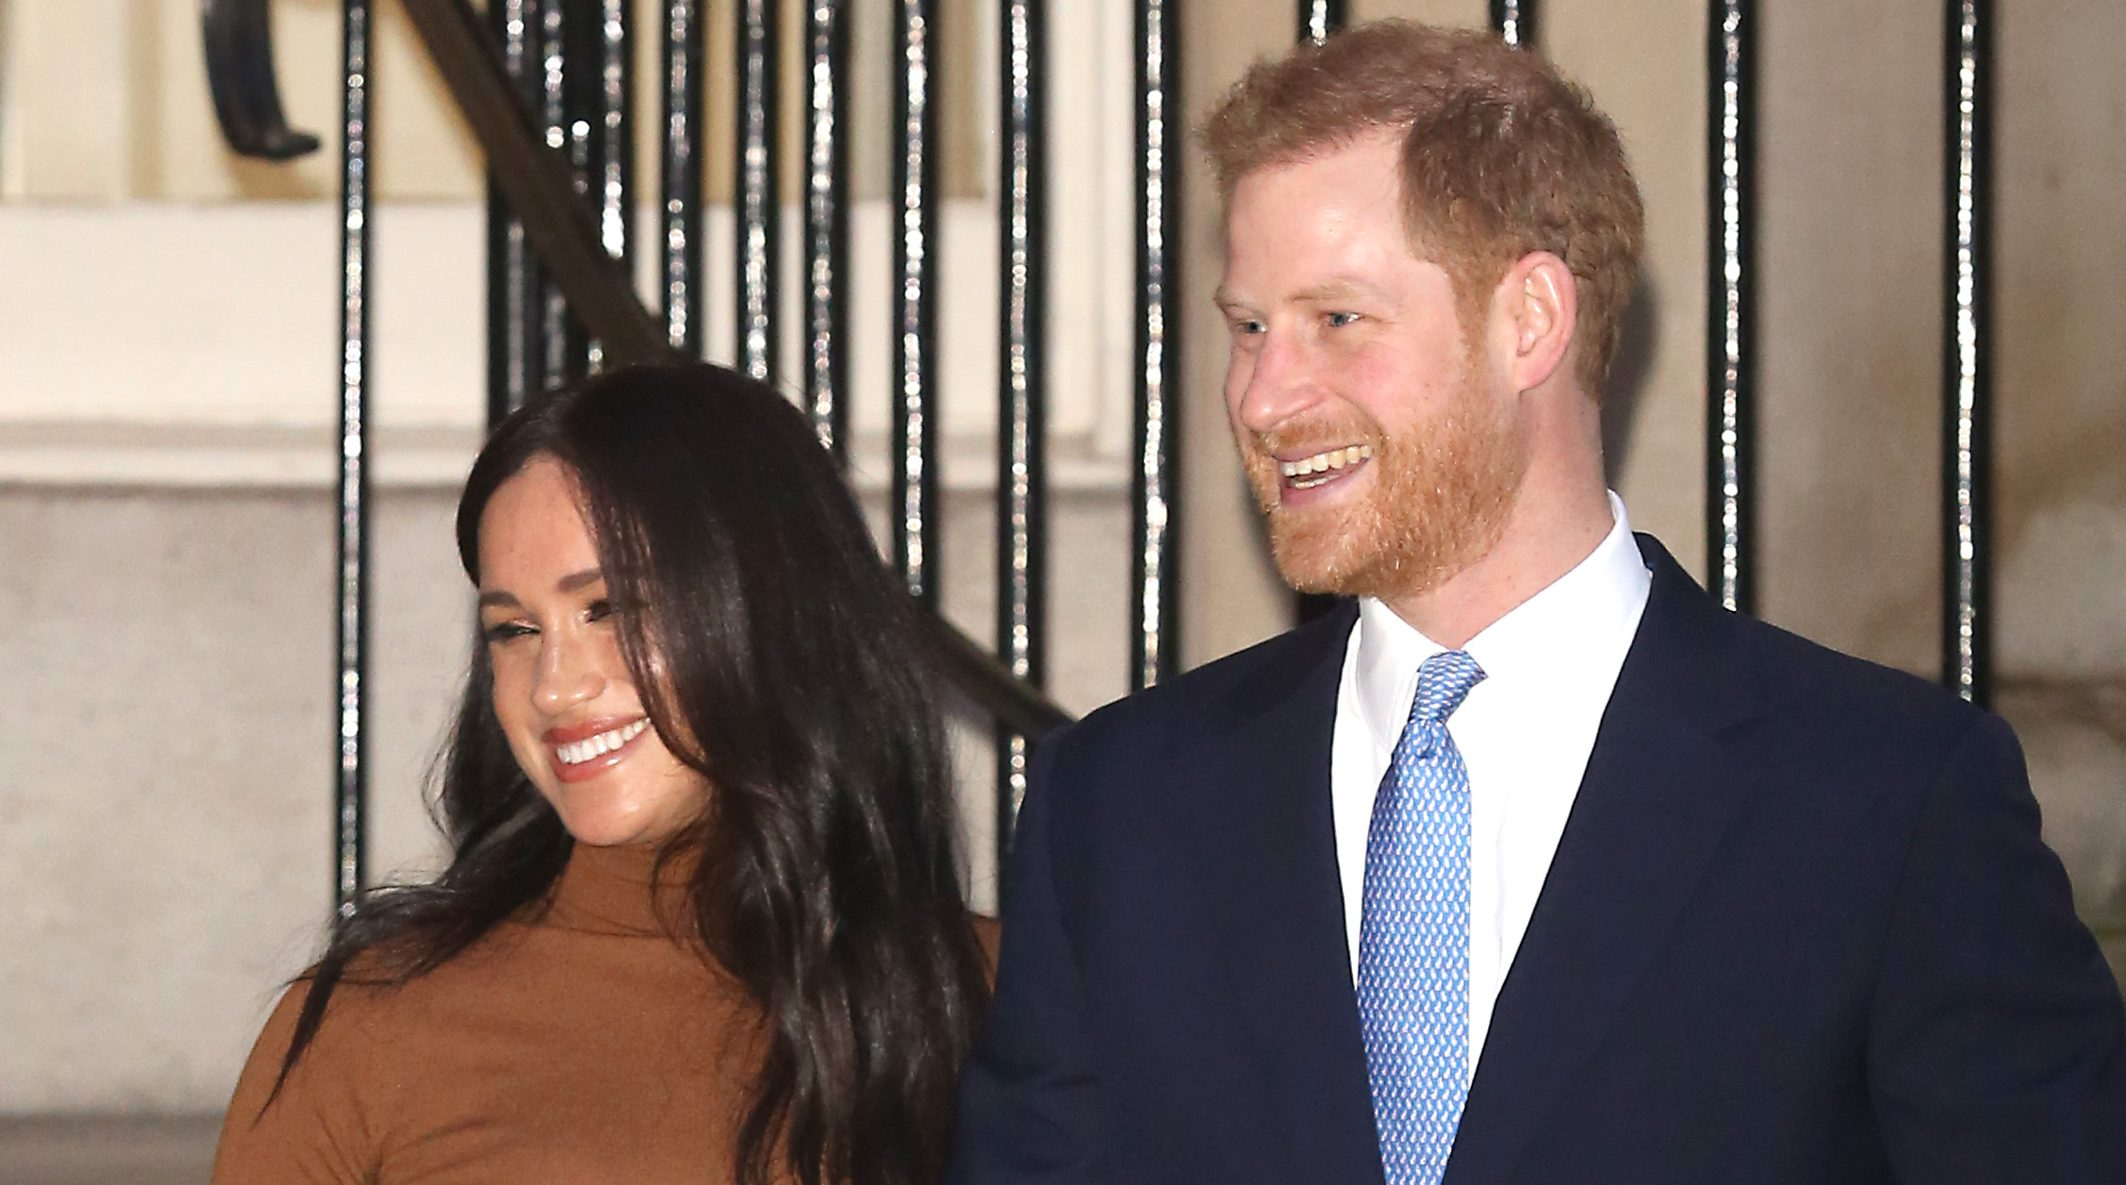 'Complicated issues' behind The Duke and Duchess of Sussex's exit from the royal family